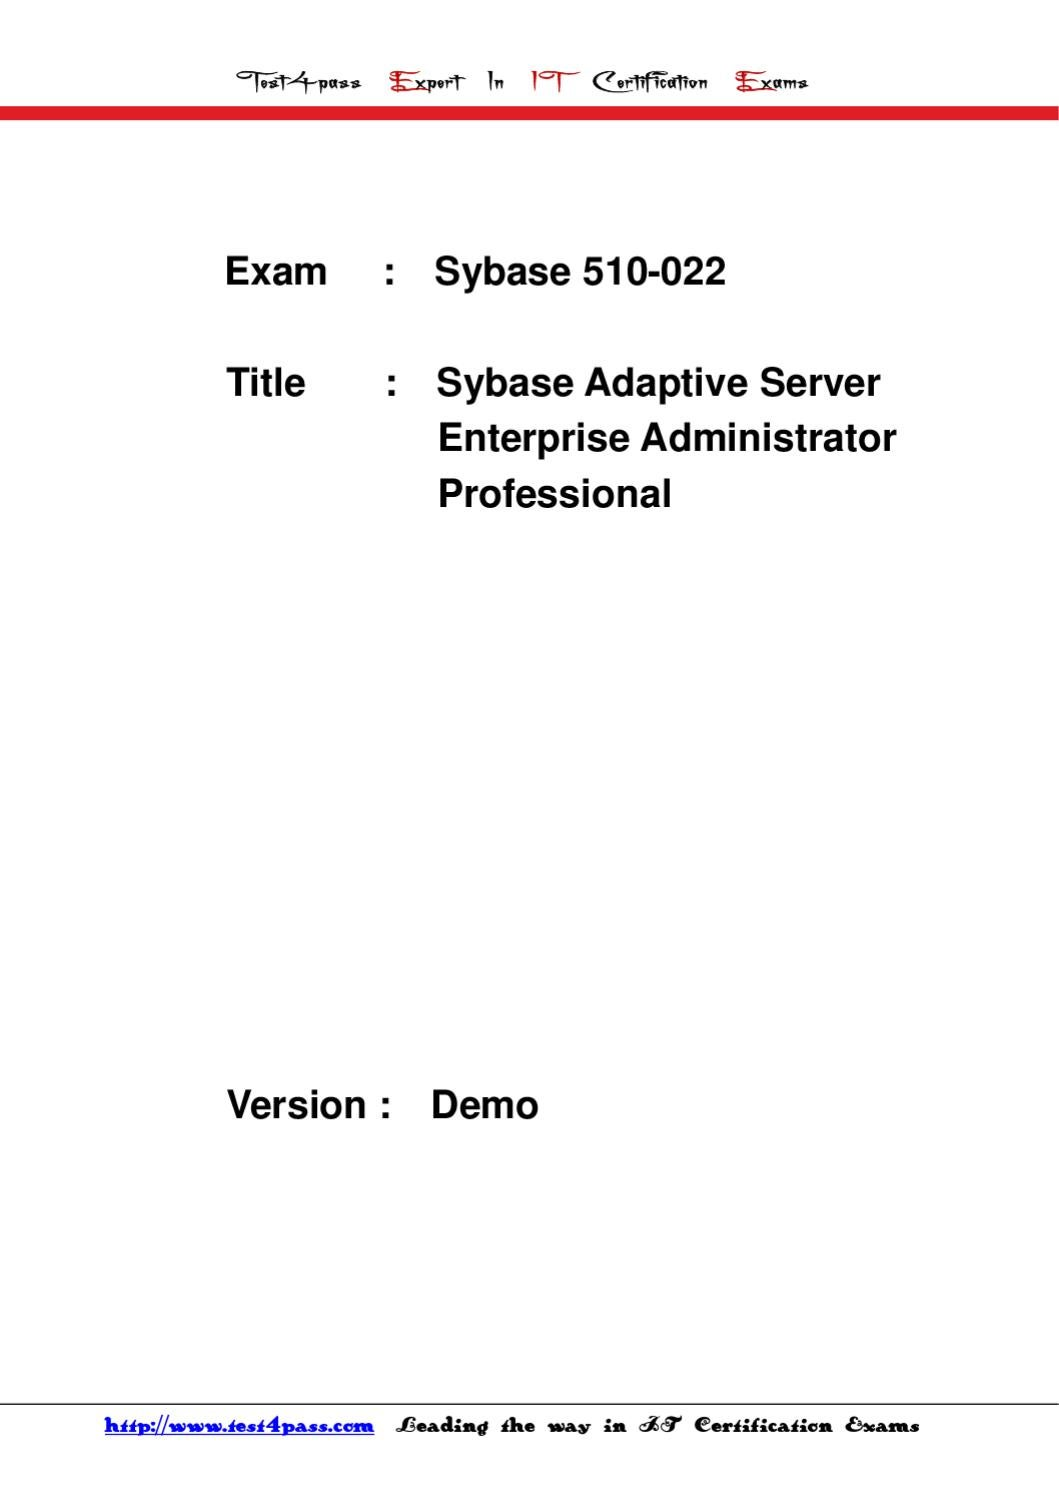 Test4pass Free Sybase 510 022 Exam Dumps Pdf Download By Sell